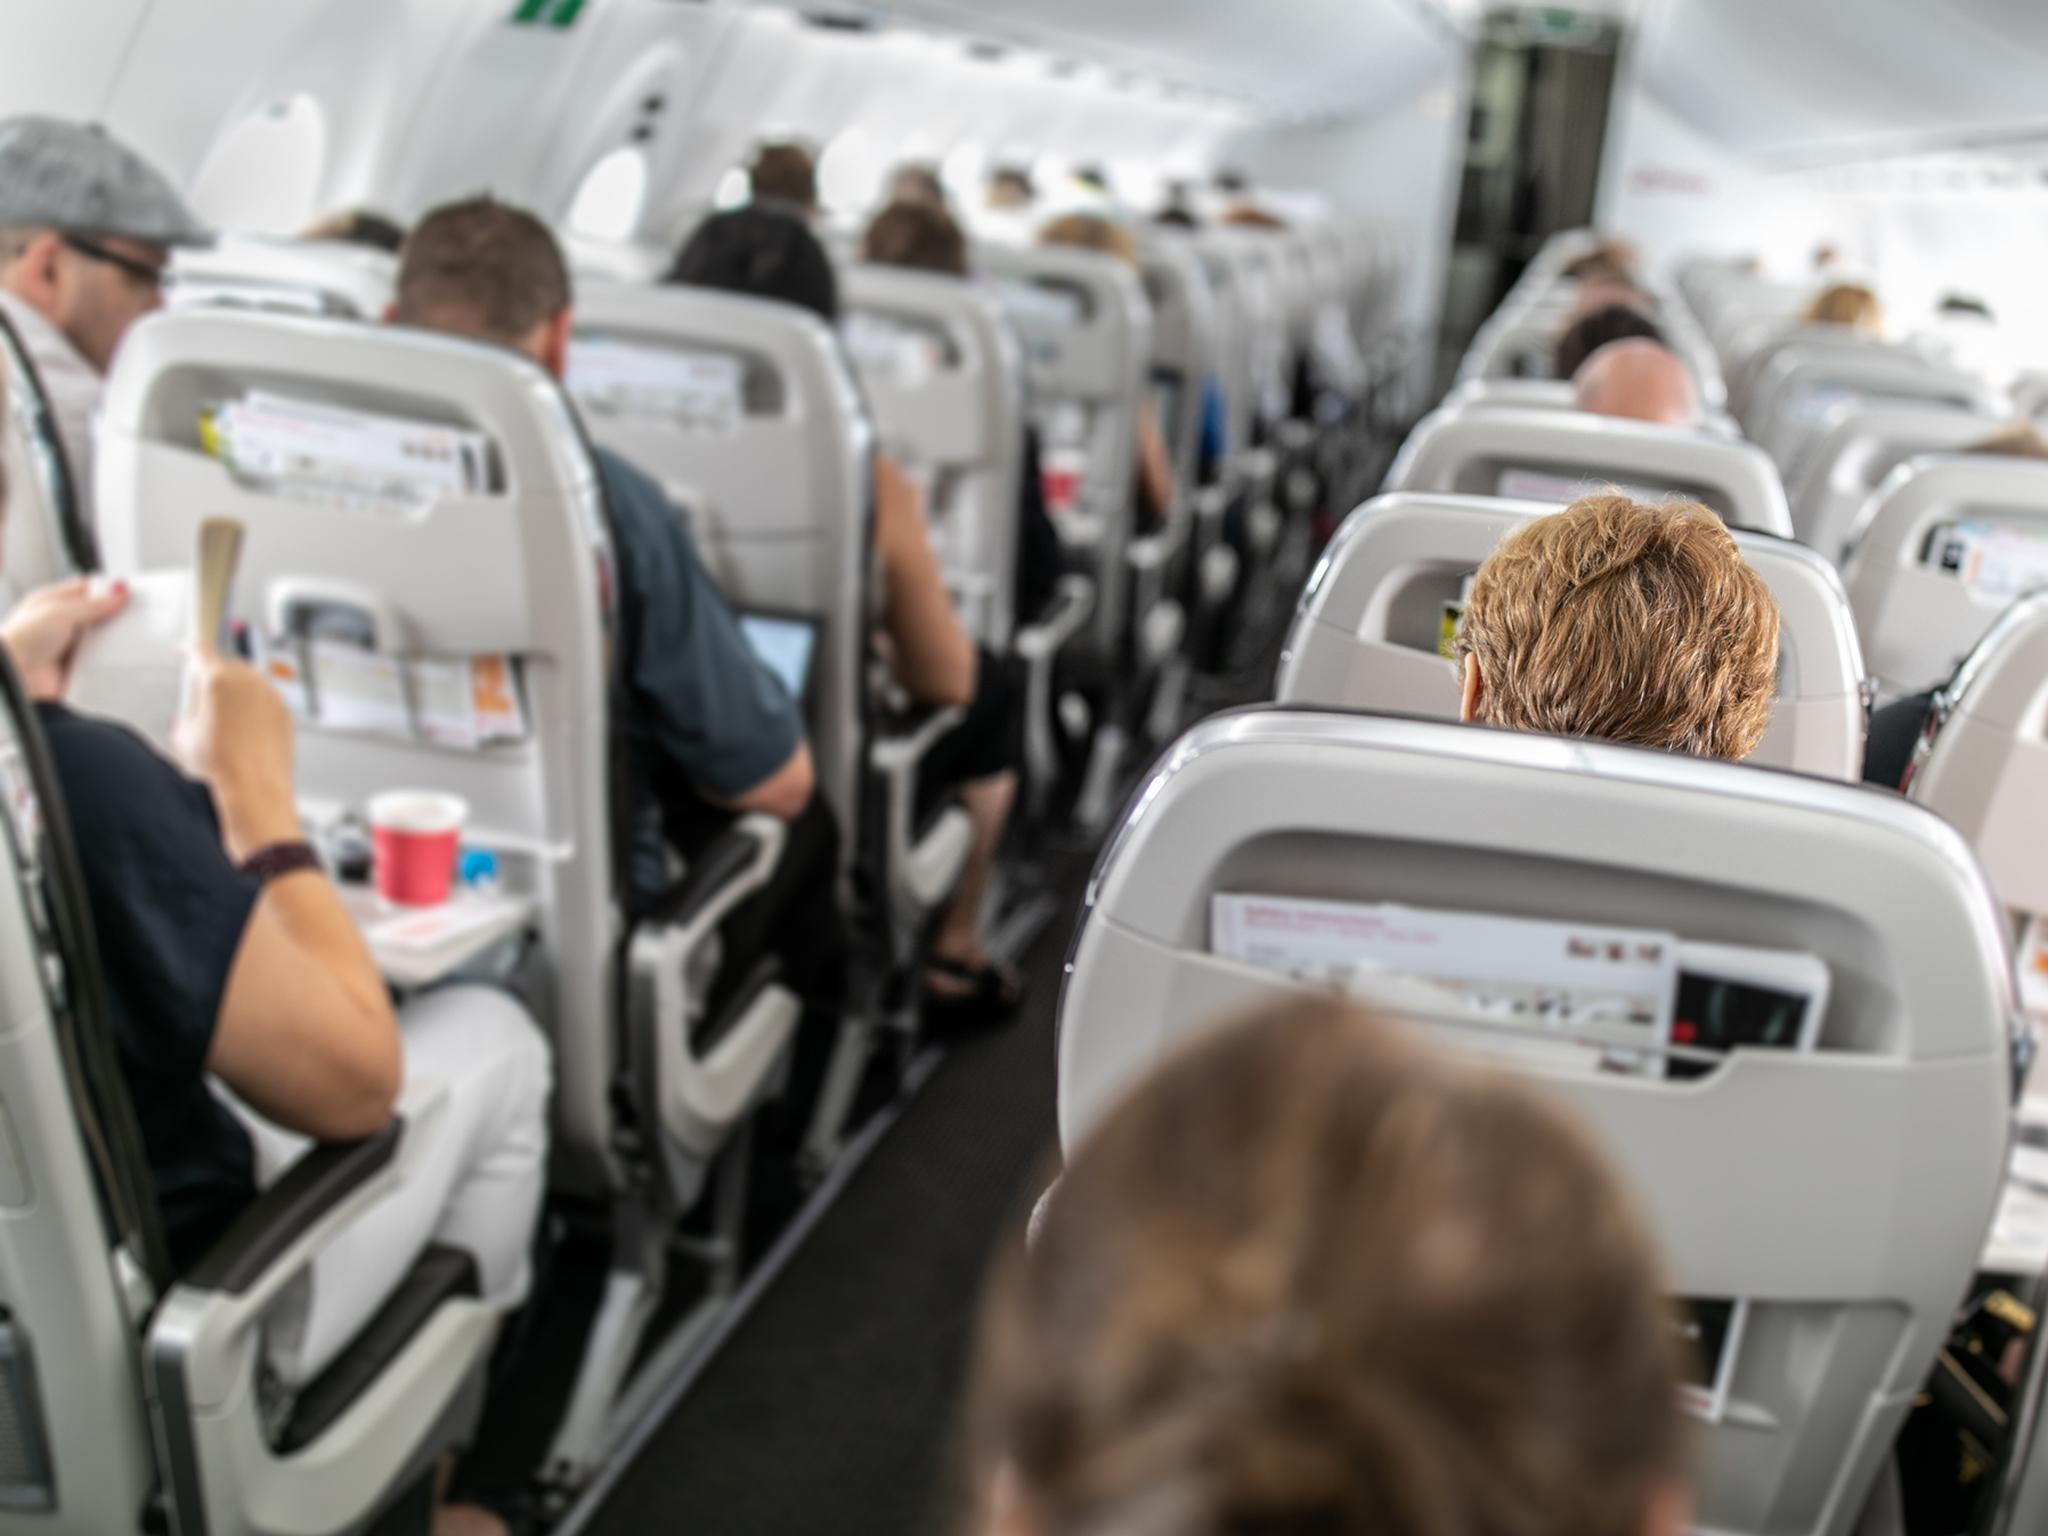 What to do when you're sat next to an irritating passenger on a plane